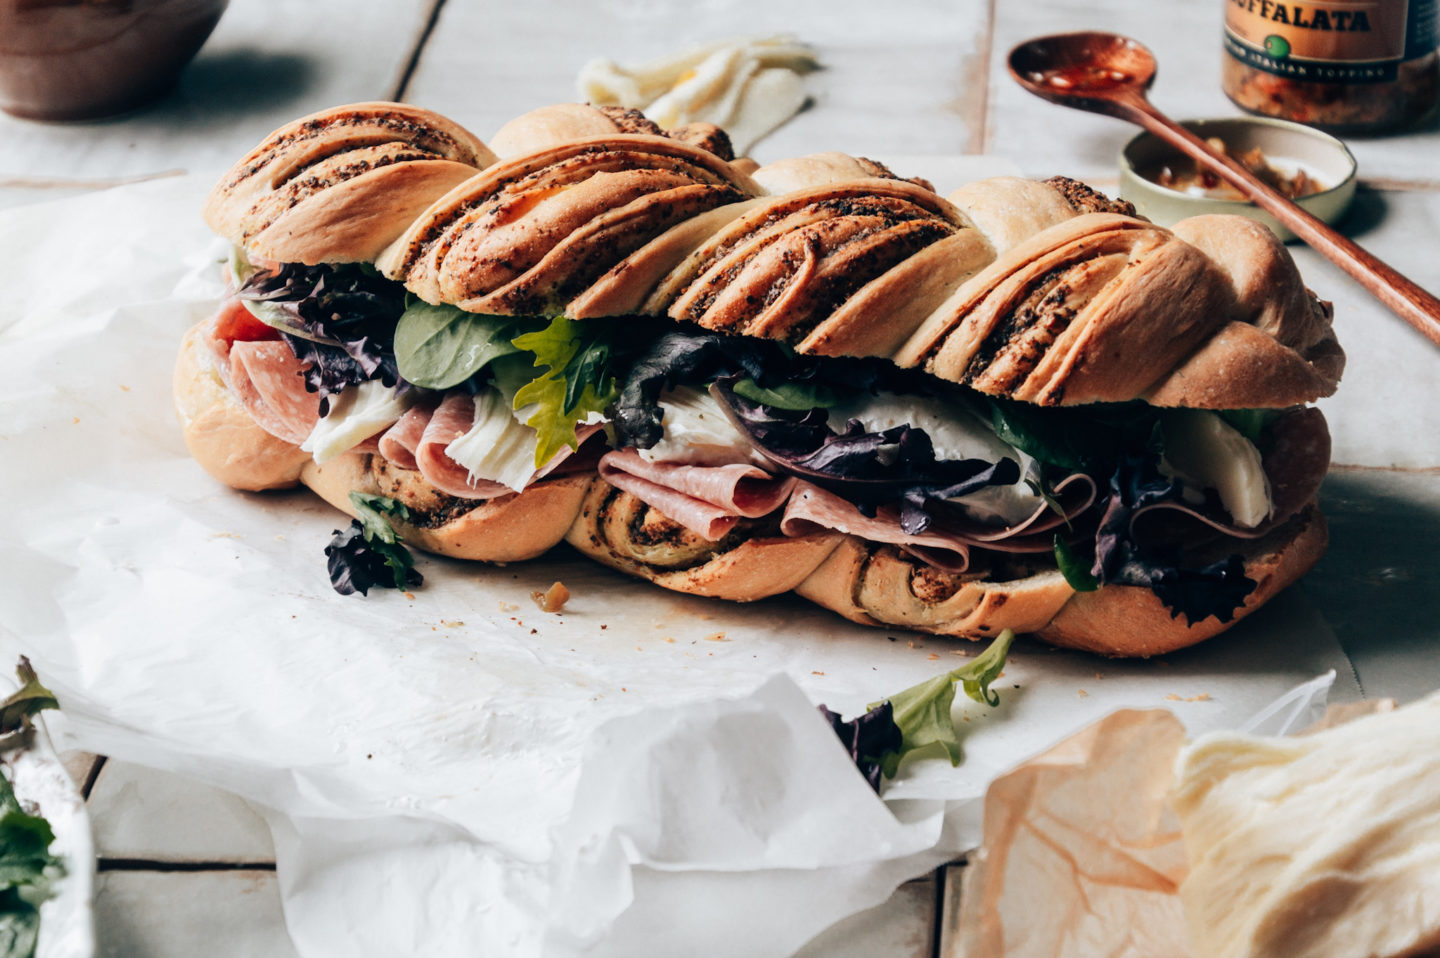 braided pesto bread adds a tasty twist on the classic Muffaletta and it's an impressive showstopper to serve at picnics and BBQ's